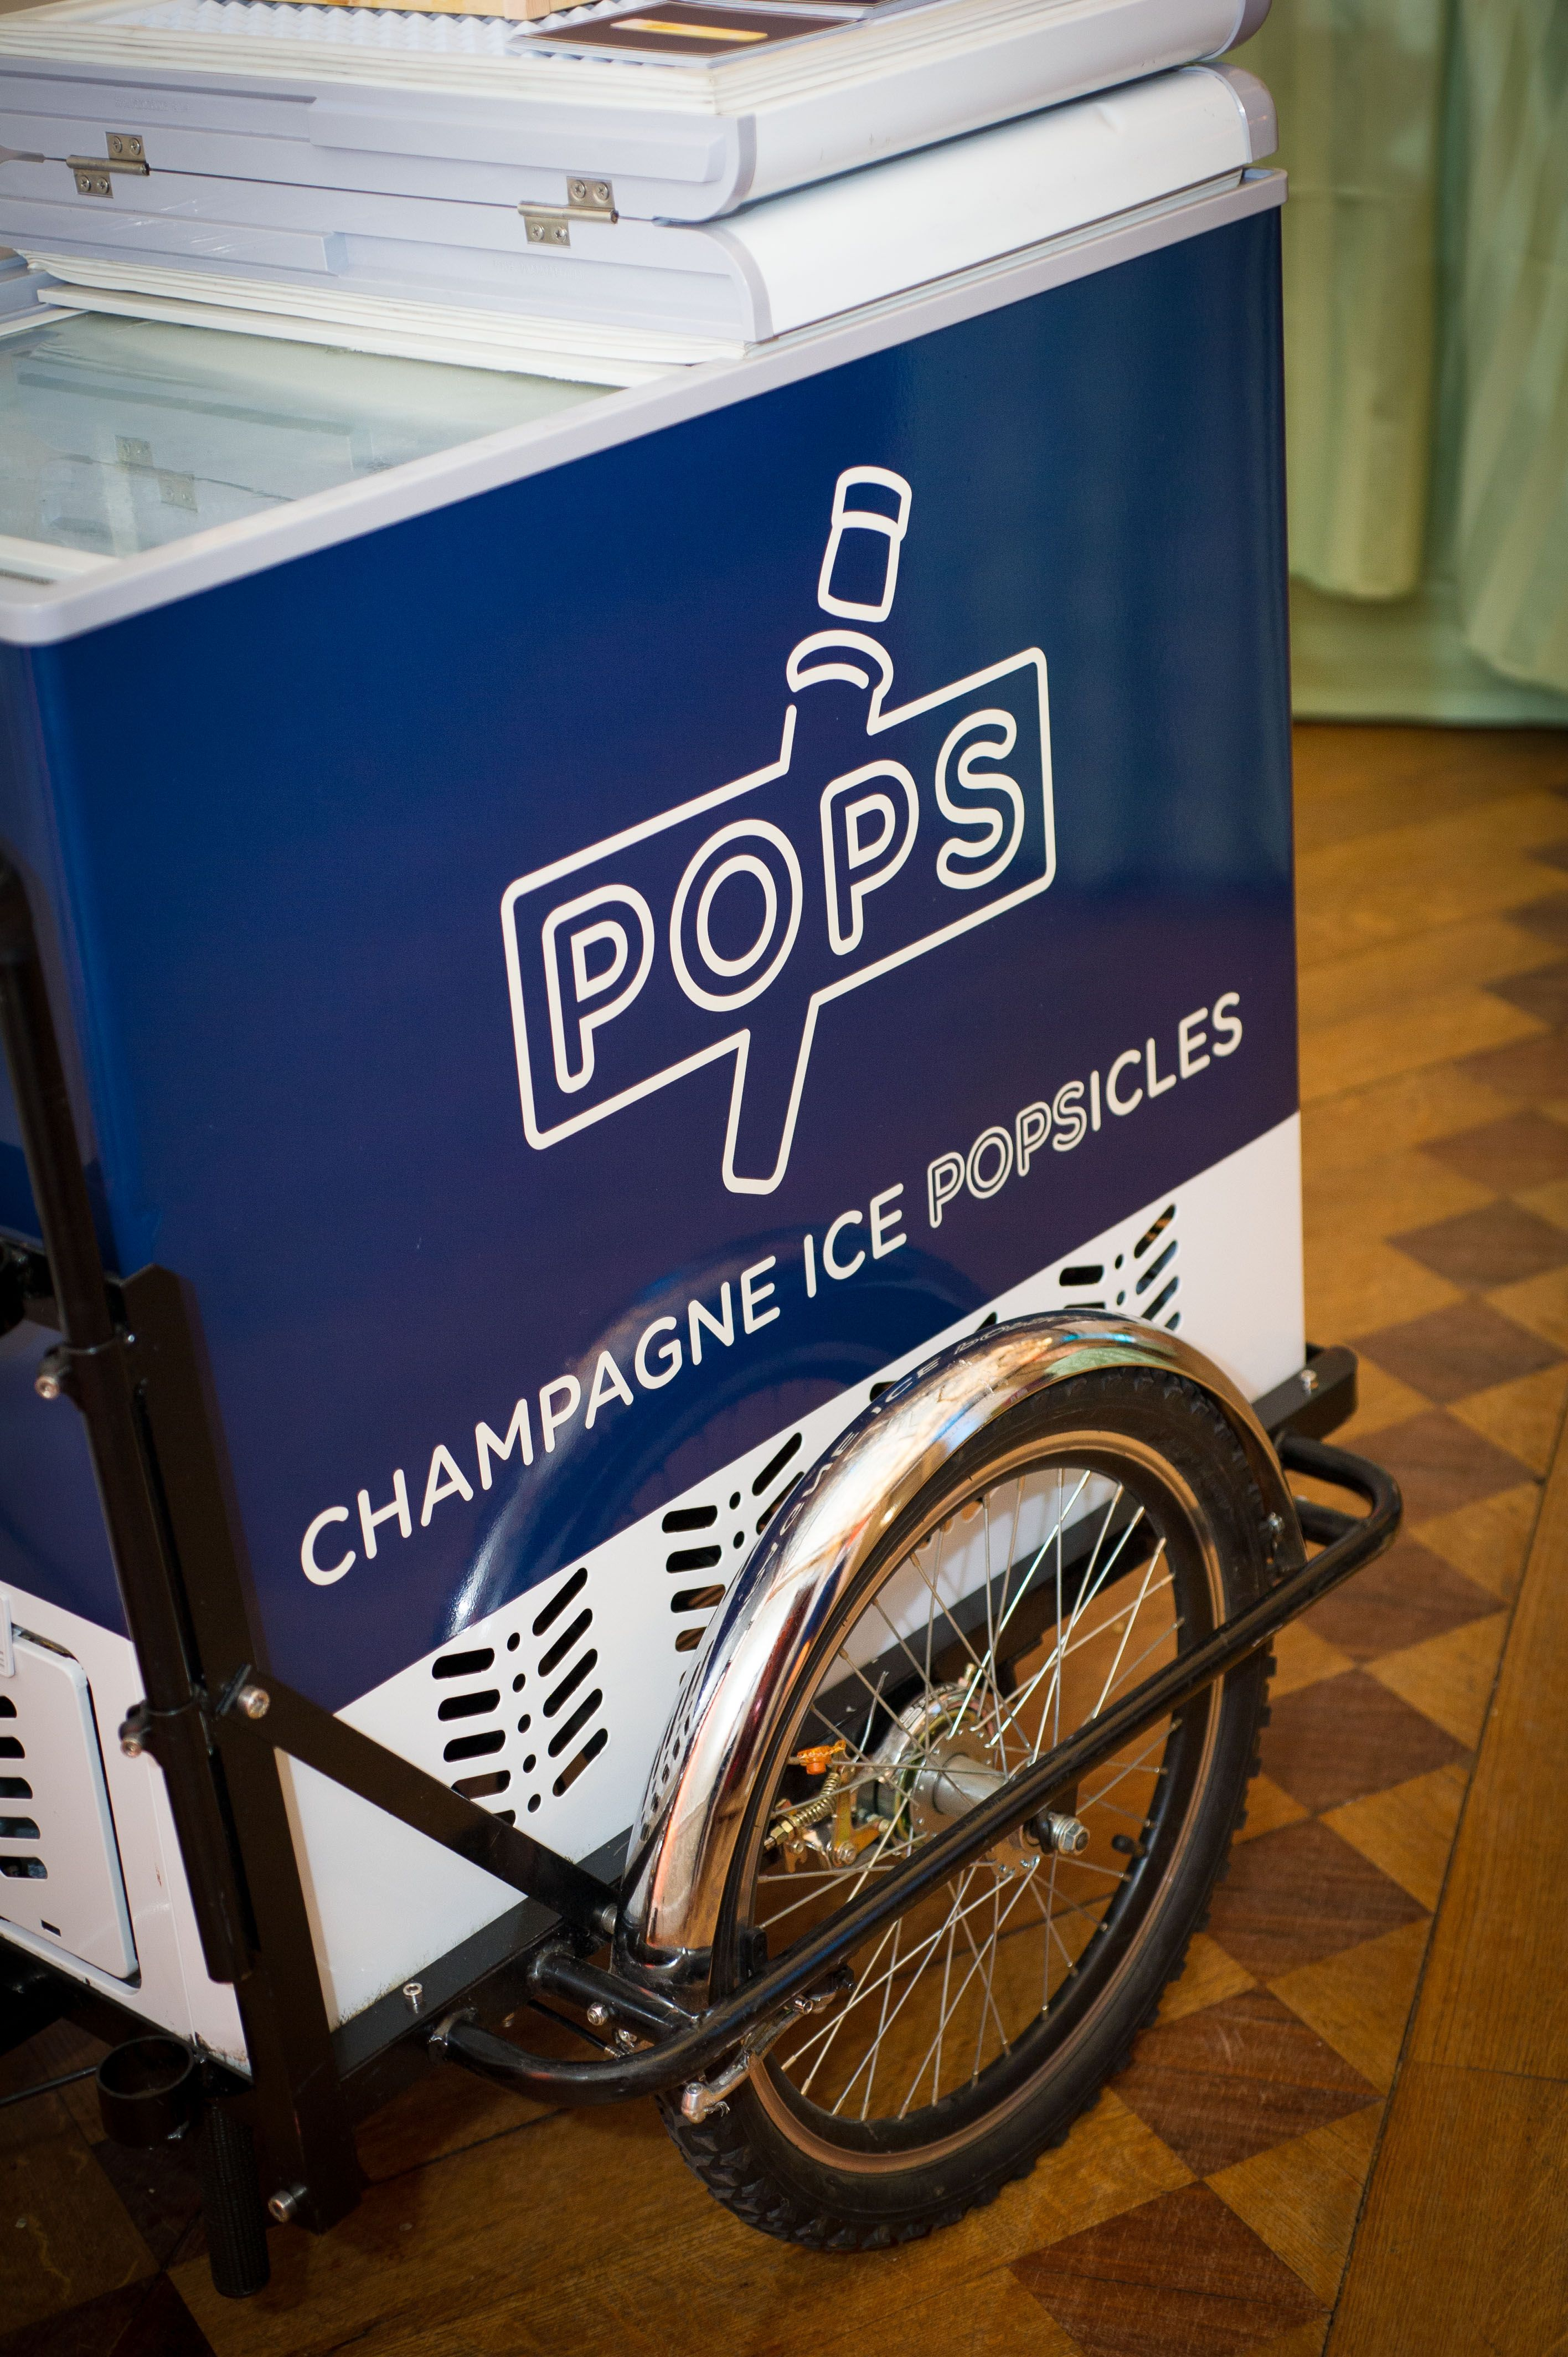 Champagne Ice Popsicles by Pops at Victorian townhouse Kent House Knightsbridge showcase event. #champagnepopsicles Champagne Ice Popsicles by Pops at Victorian townhouse Kent House Knightsbridge showcase event. #champagnepopsicles